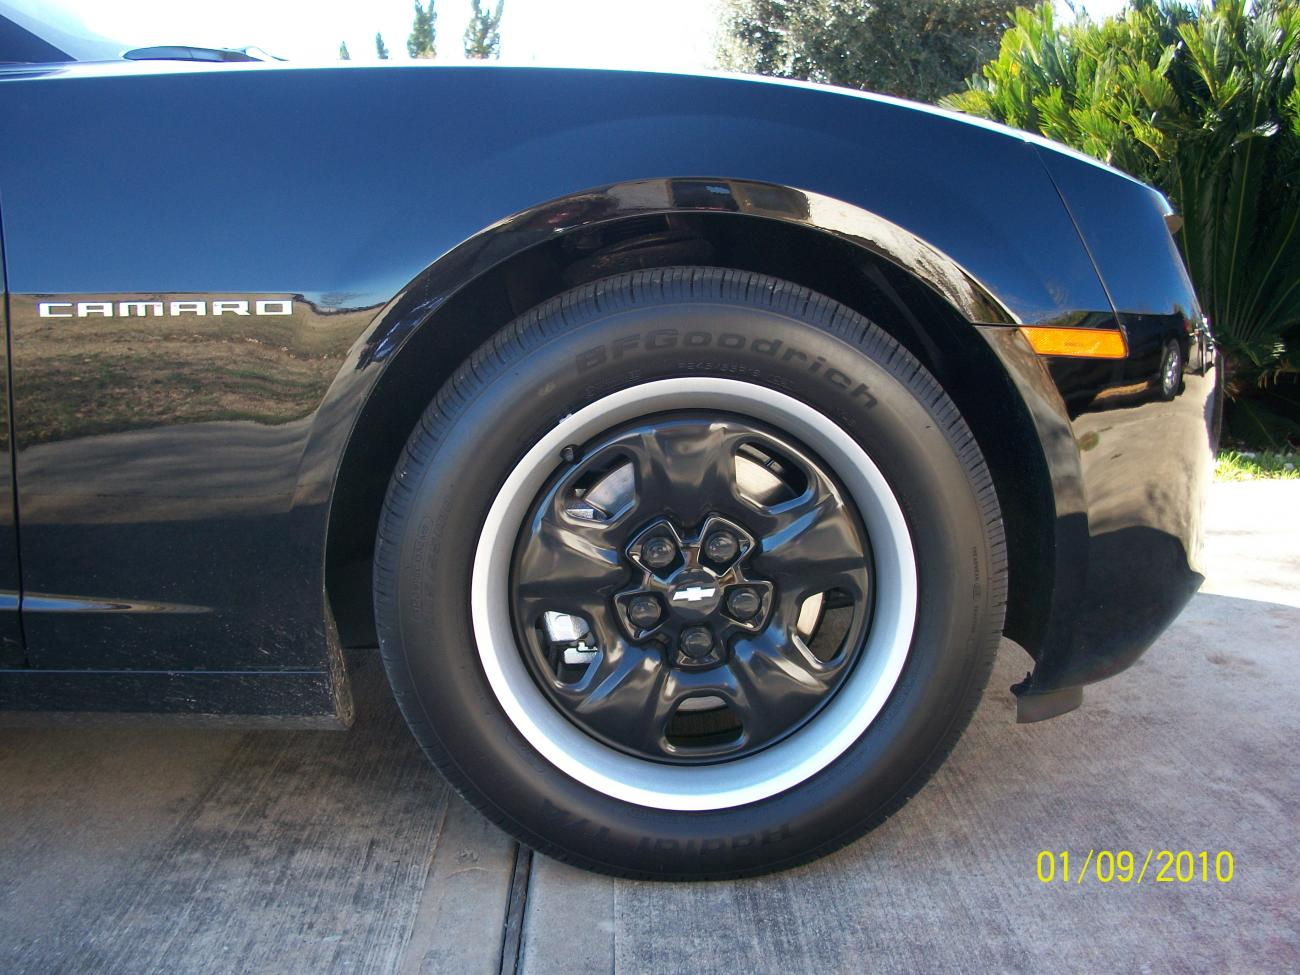 2010 ls stock wheels and tires camaro5 chevy camaro. Black Bedroom Furniture Sets. Home Design Ideas